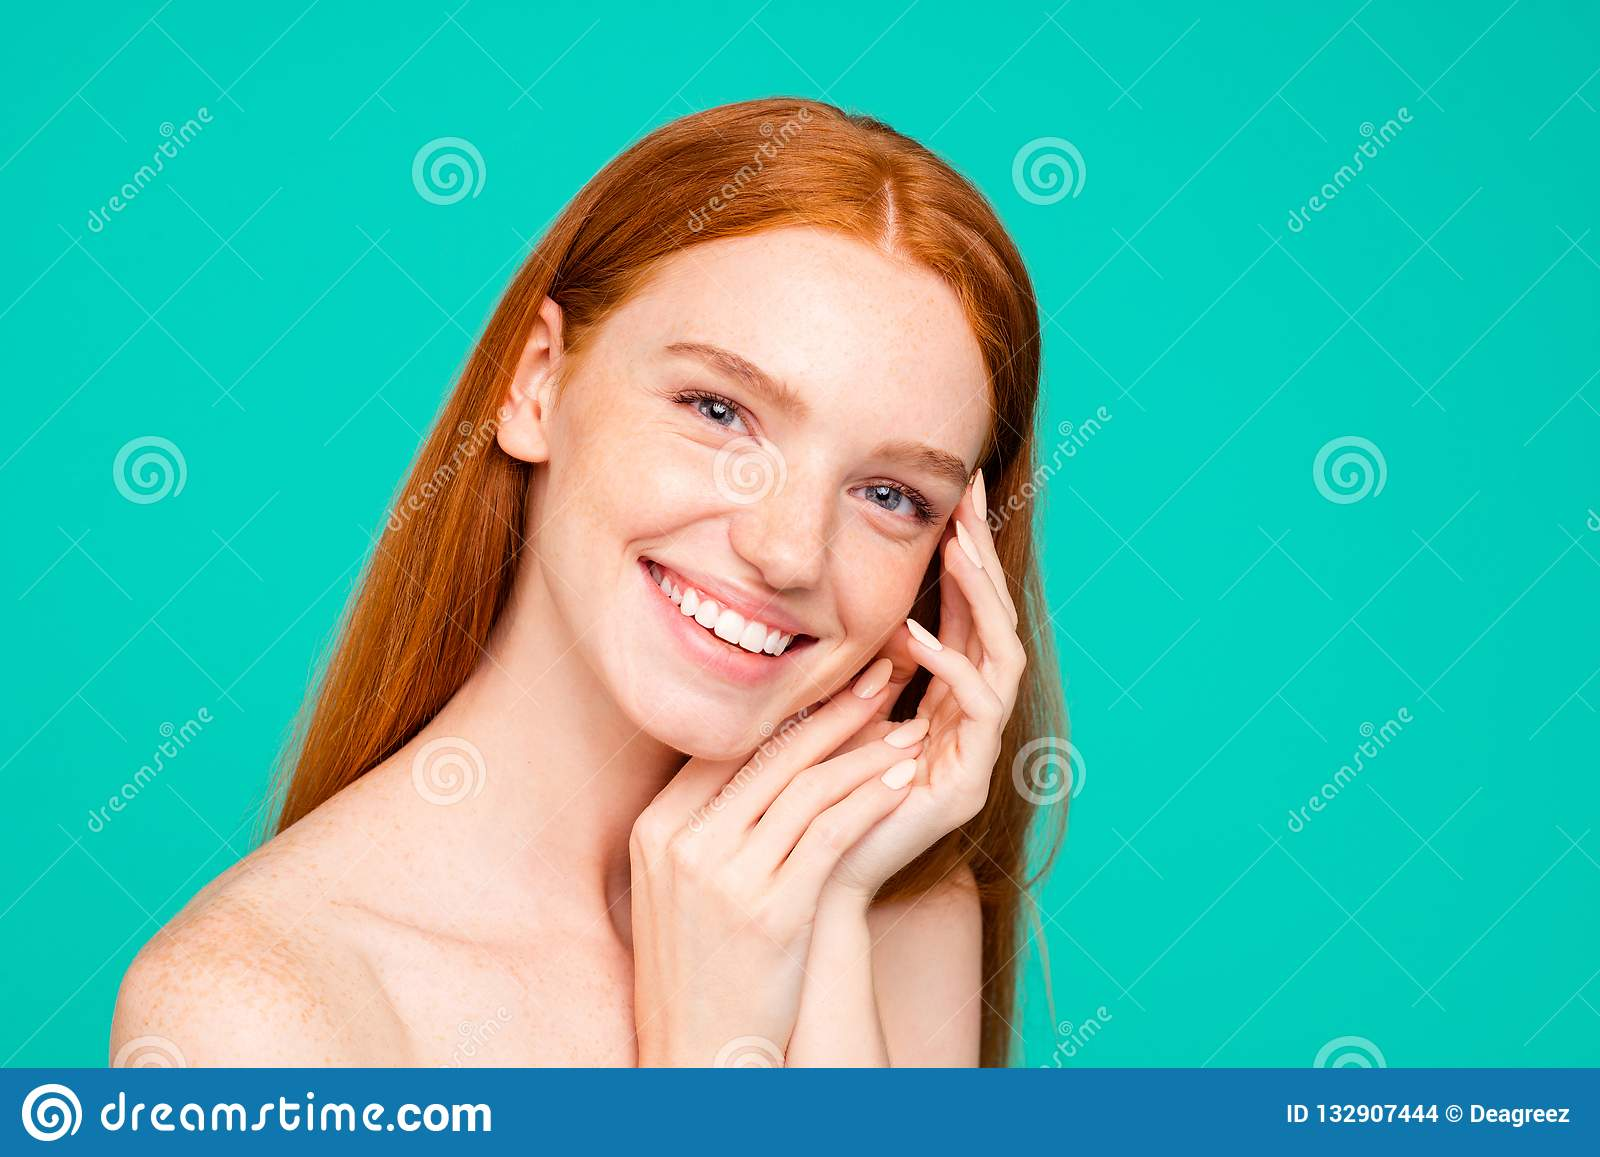 Advertising Concept Cheerful Nude Natural Red Girl, Shiny Pure Stock Photo - Image Of -4608